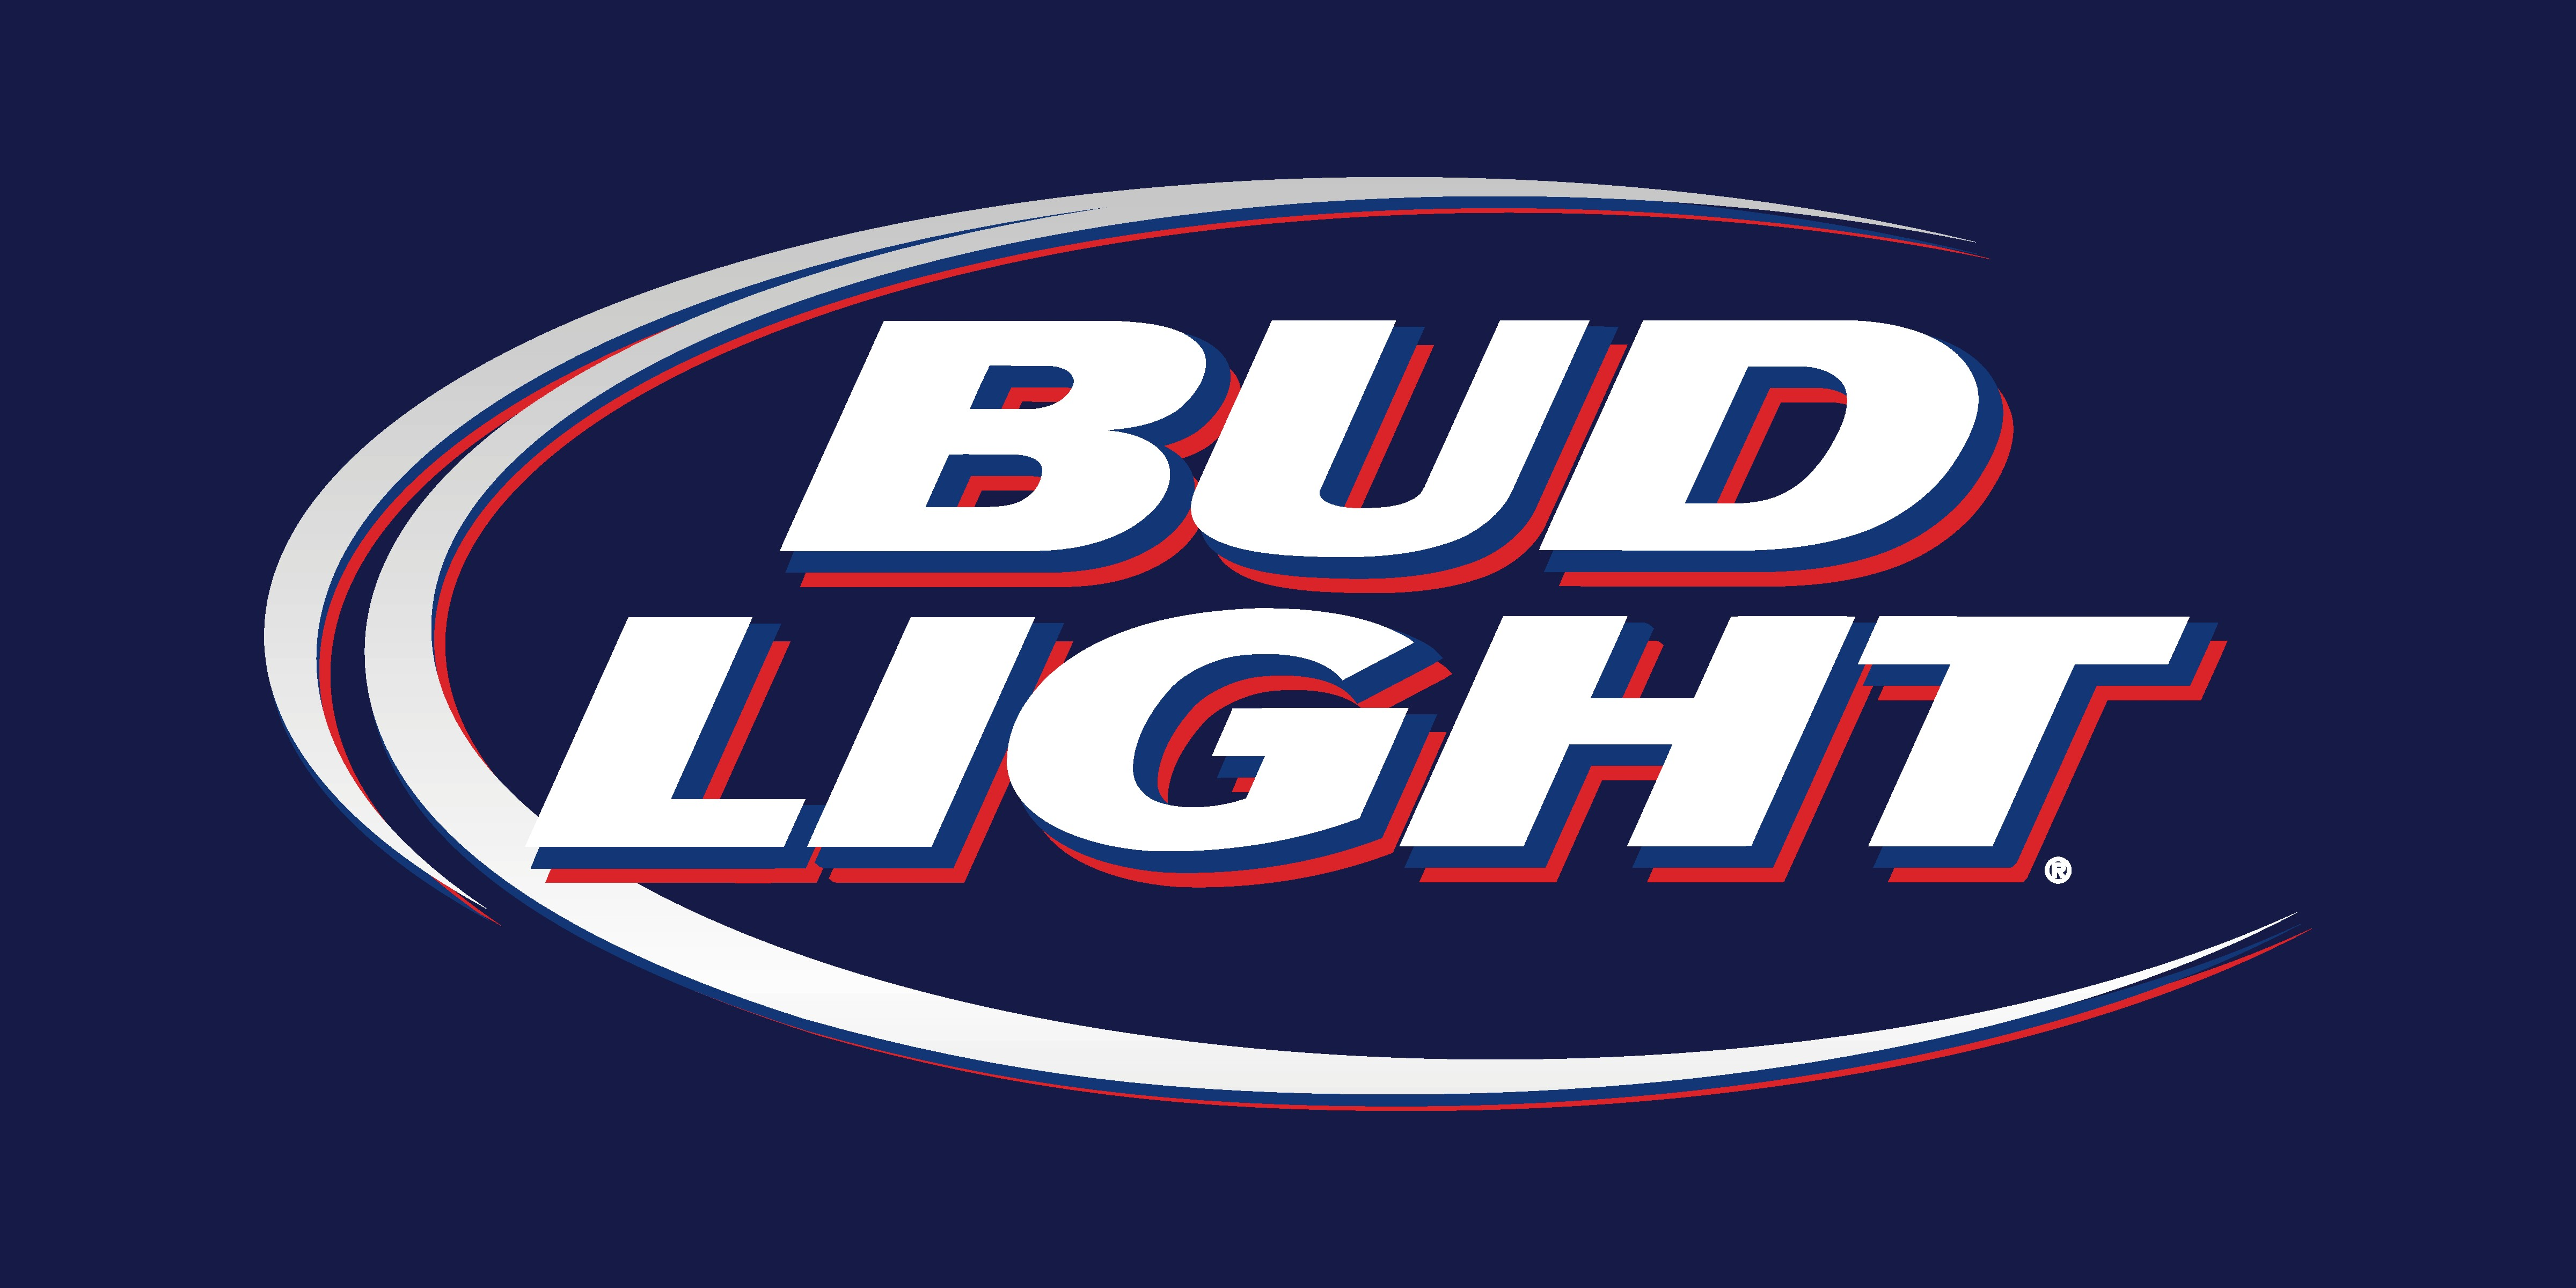 bud light bud light bud light bud light bud light 4800x2400